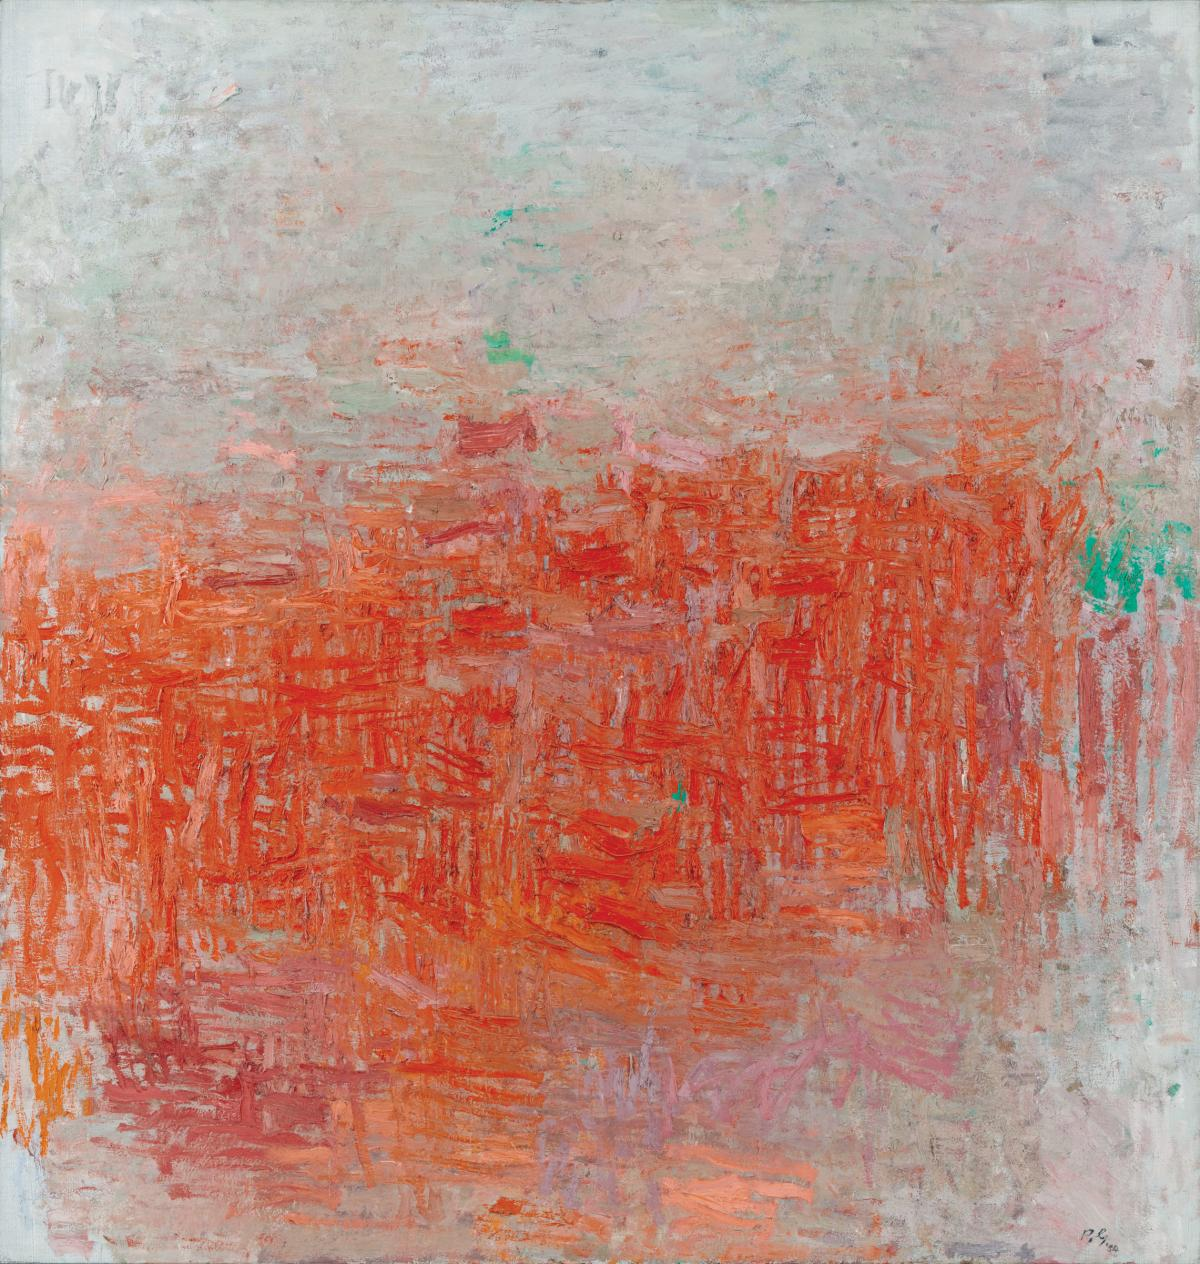 Abstract oil painting with red and orange